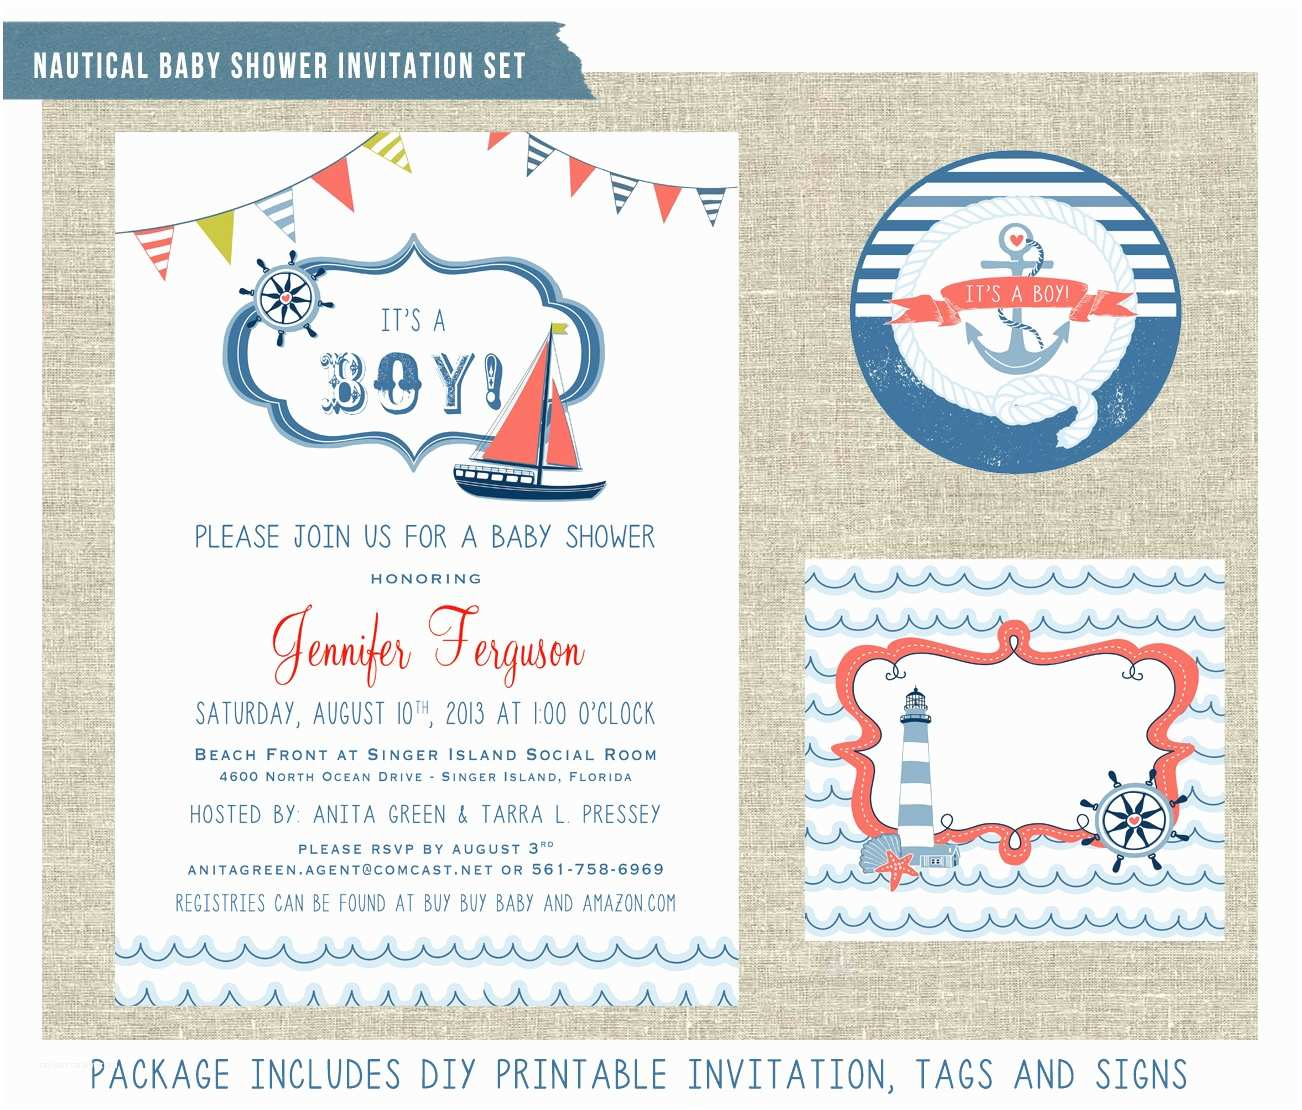 Nautical themed Baby Shower Invitations Nautical themed Baby Shower Invitation Set by